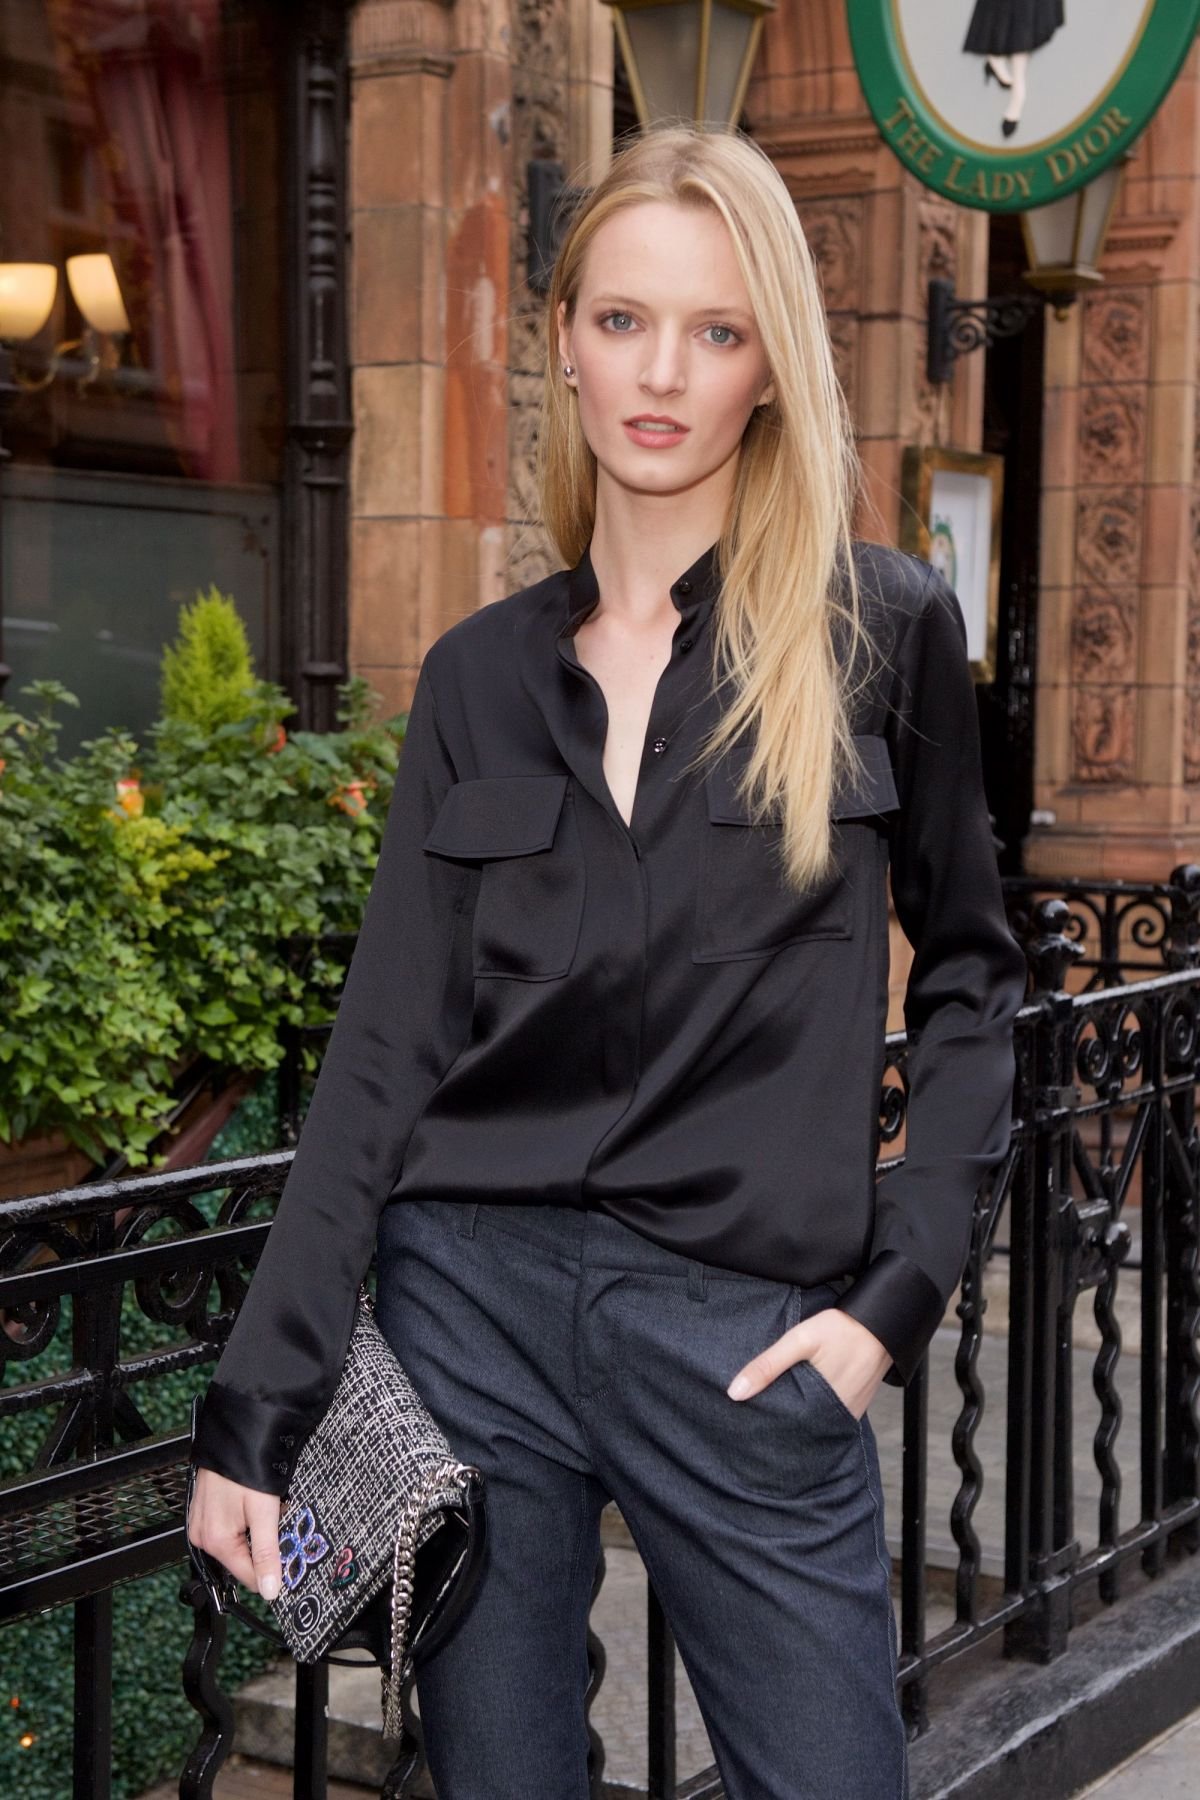 DARIA STROKOUS at Lady Dior Party in London 05/30/2016